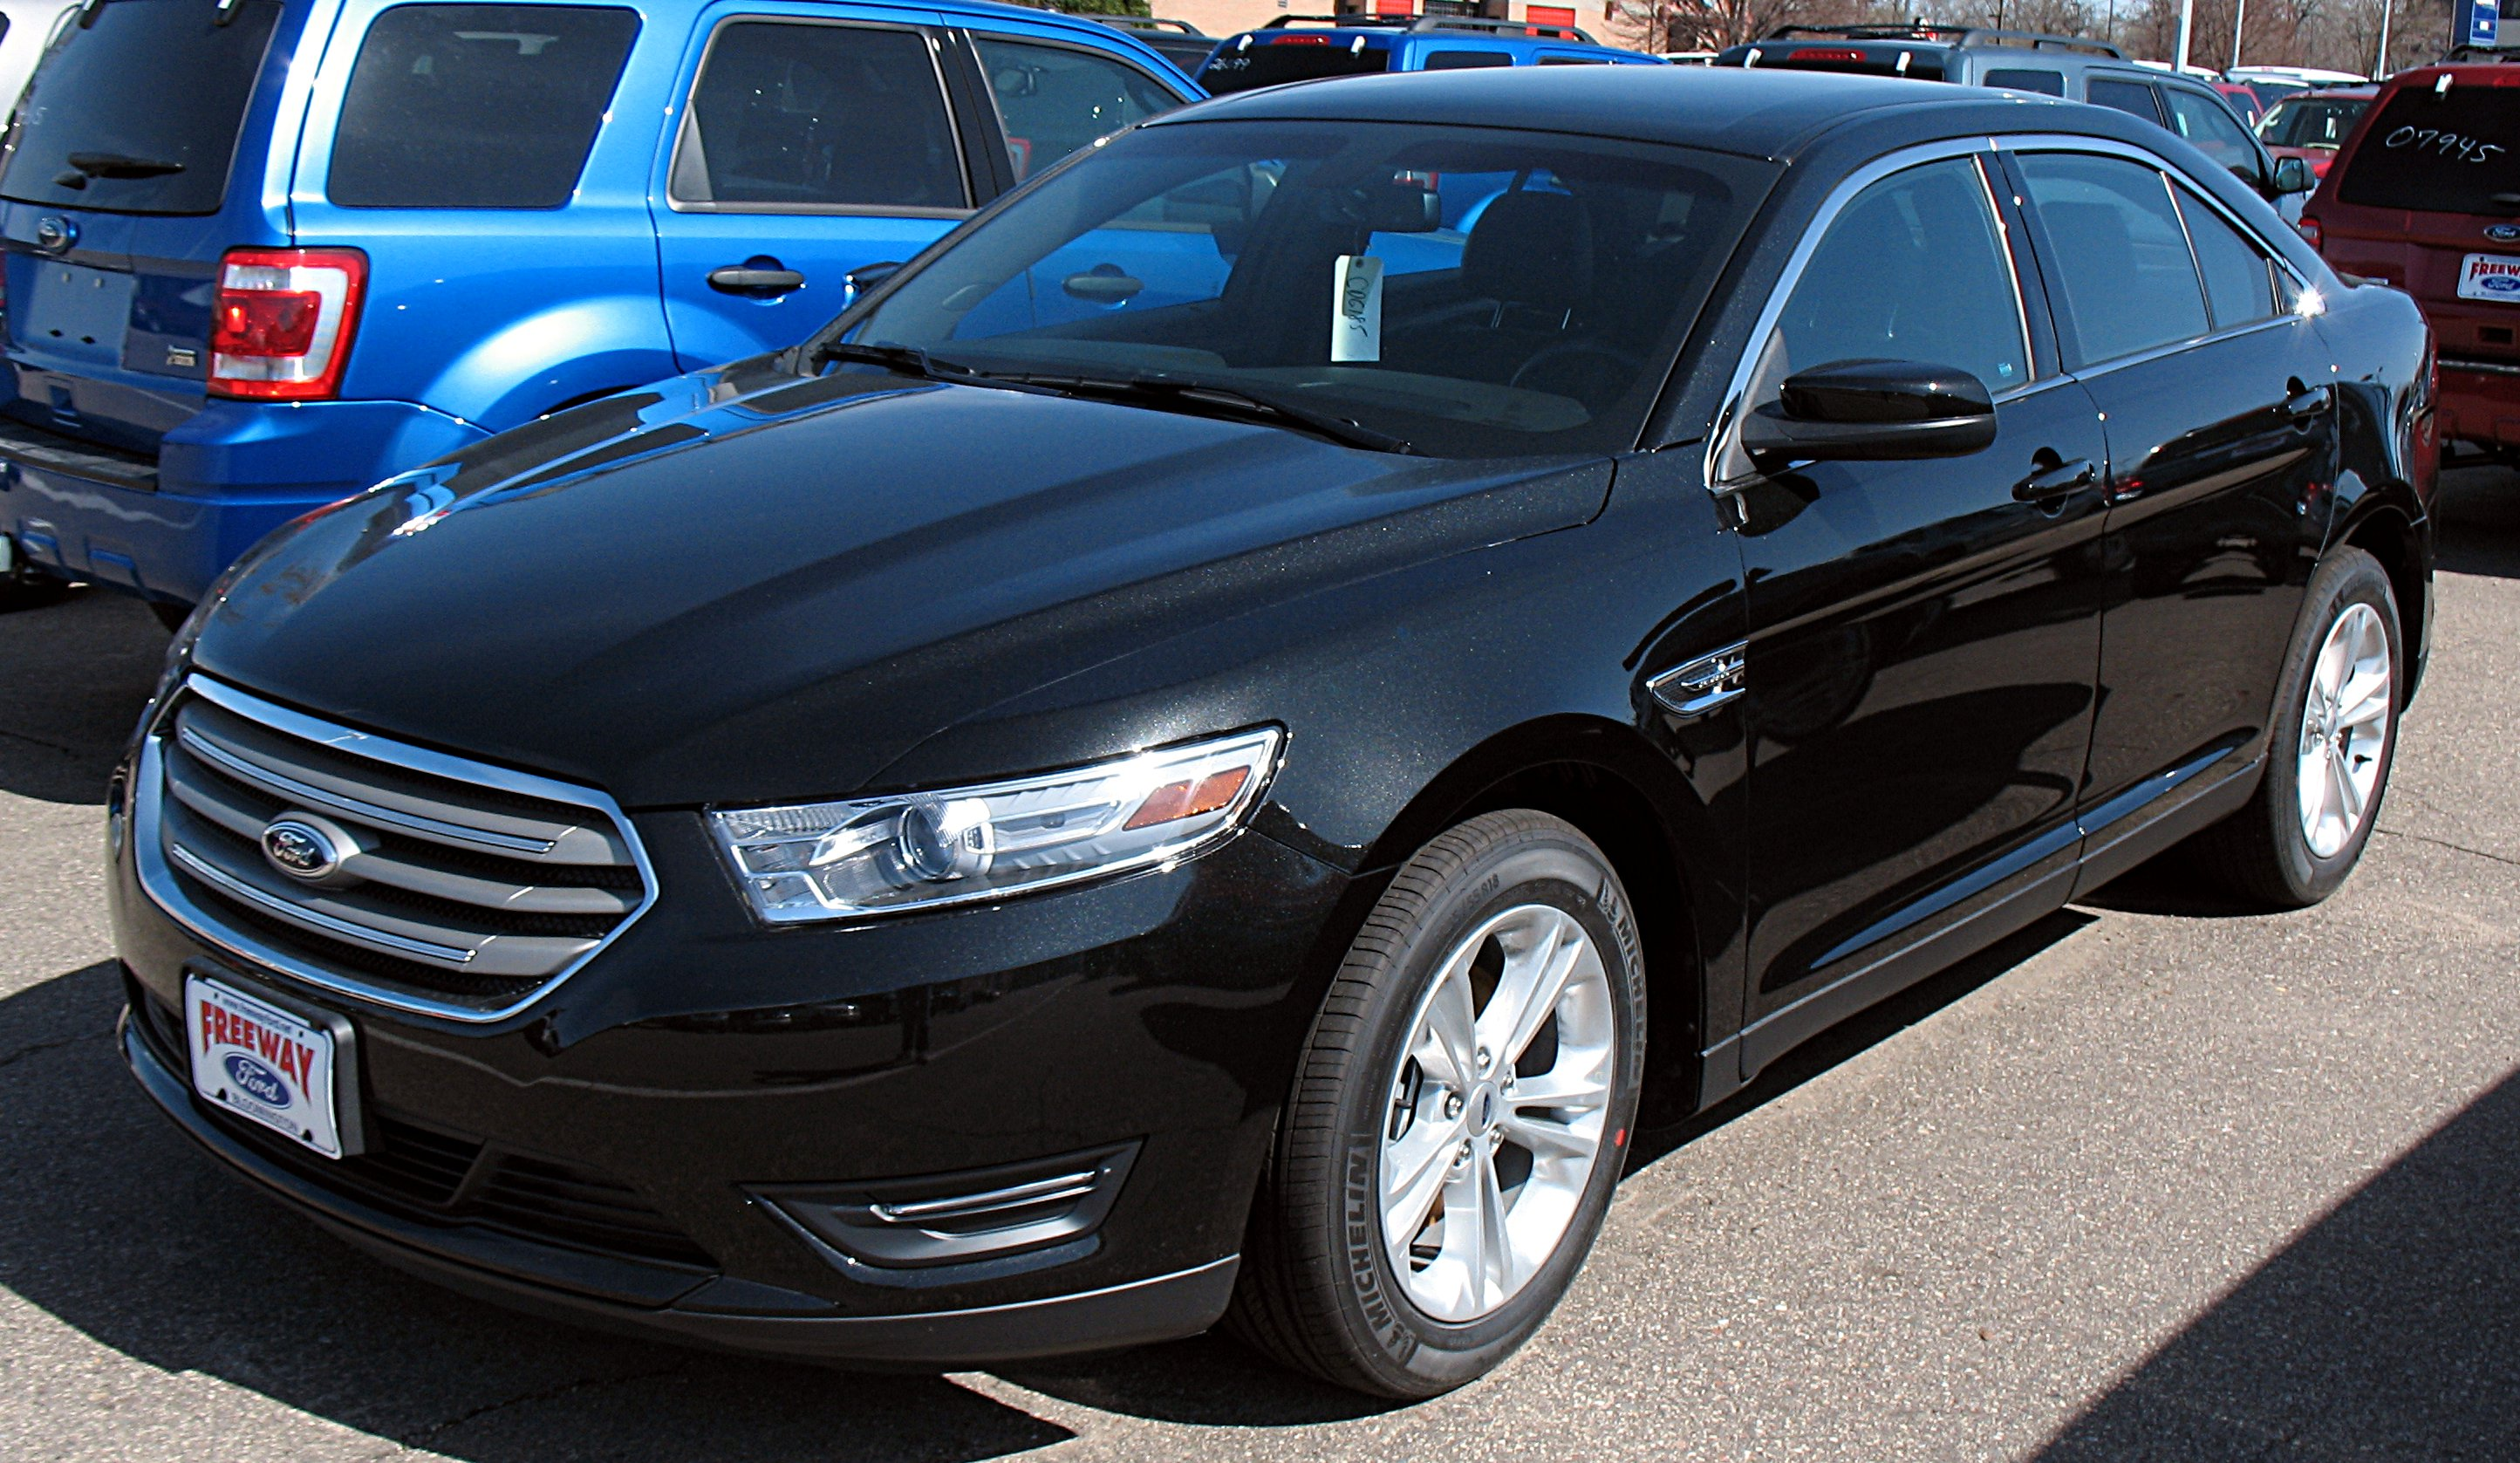 2013 ford taurus partsopen. Black Bedroom Furniture Sets. Home Design Ideas